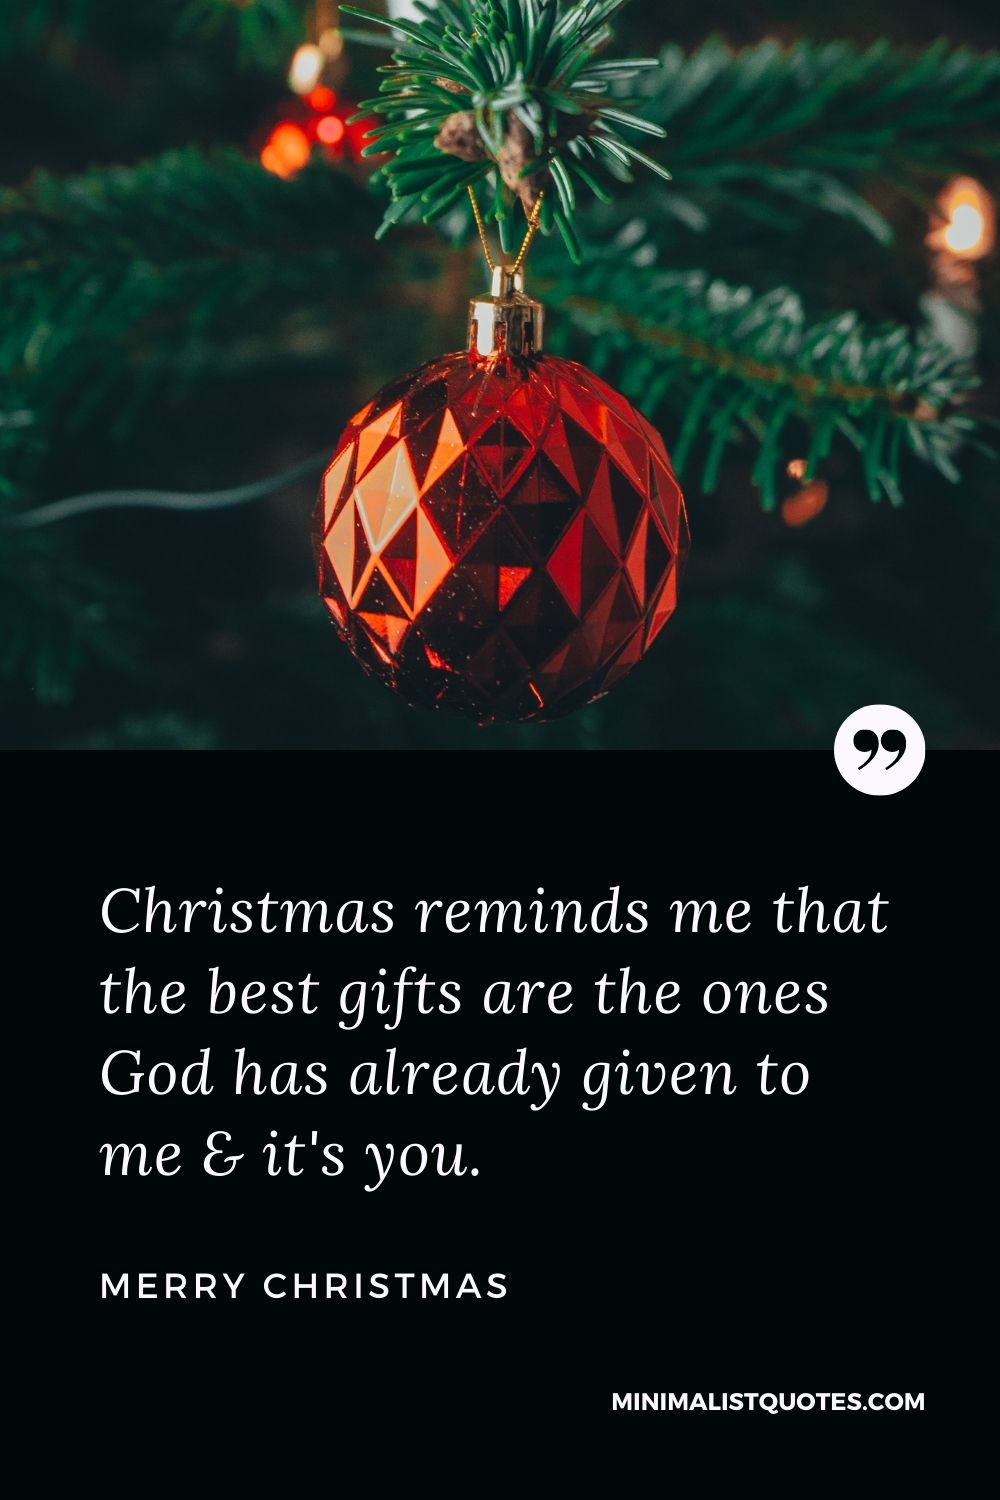 Merry Christmas Wish - Christmas reminds me that the best gifts are the ones God has alreadygiven to me & it's you.